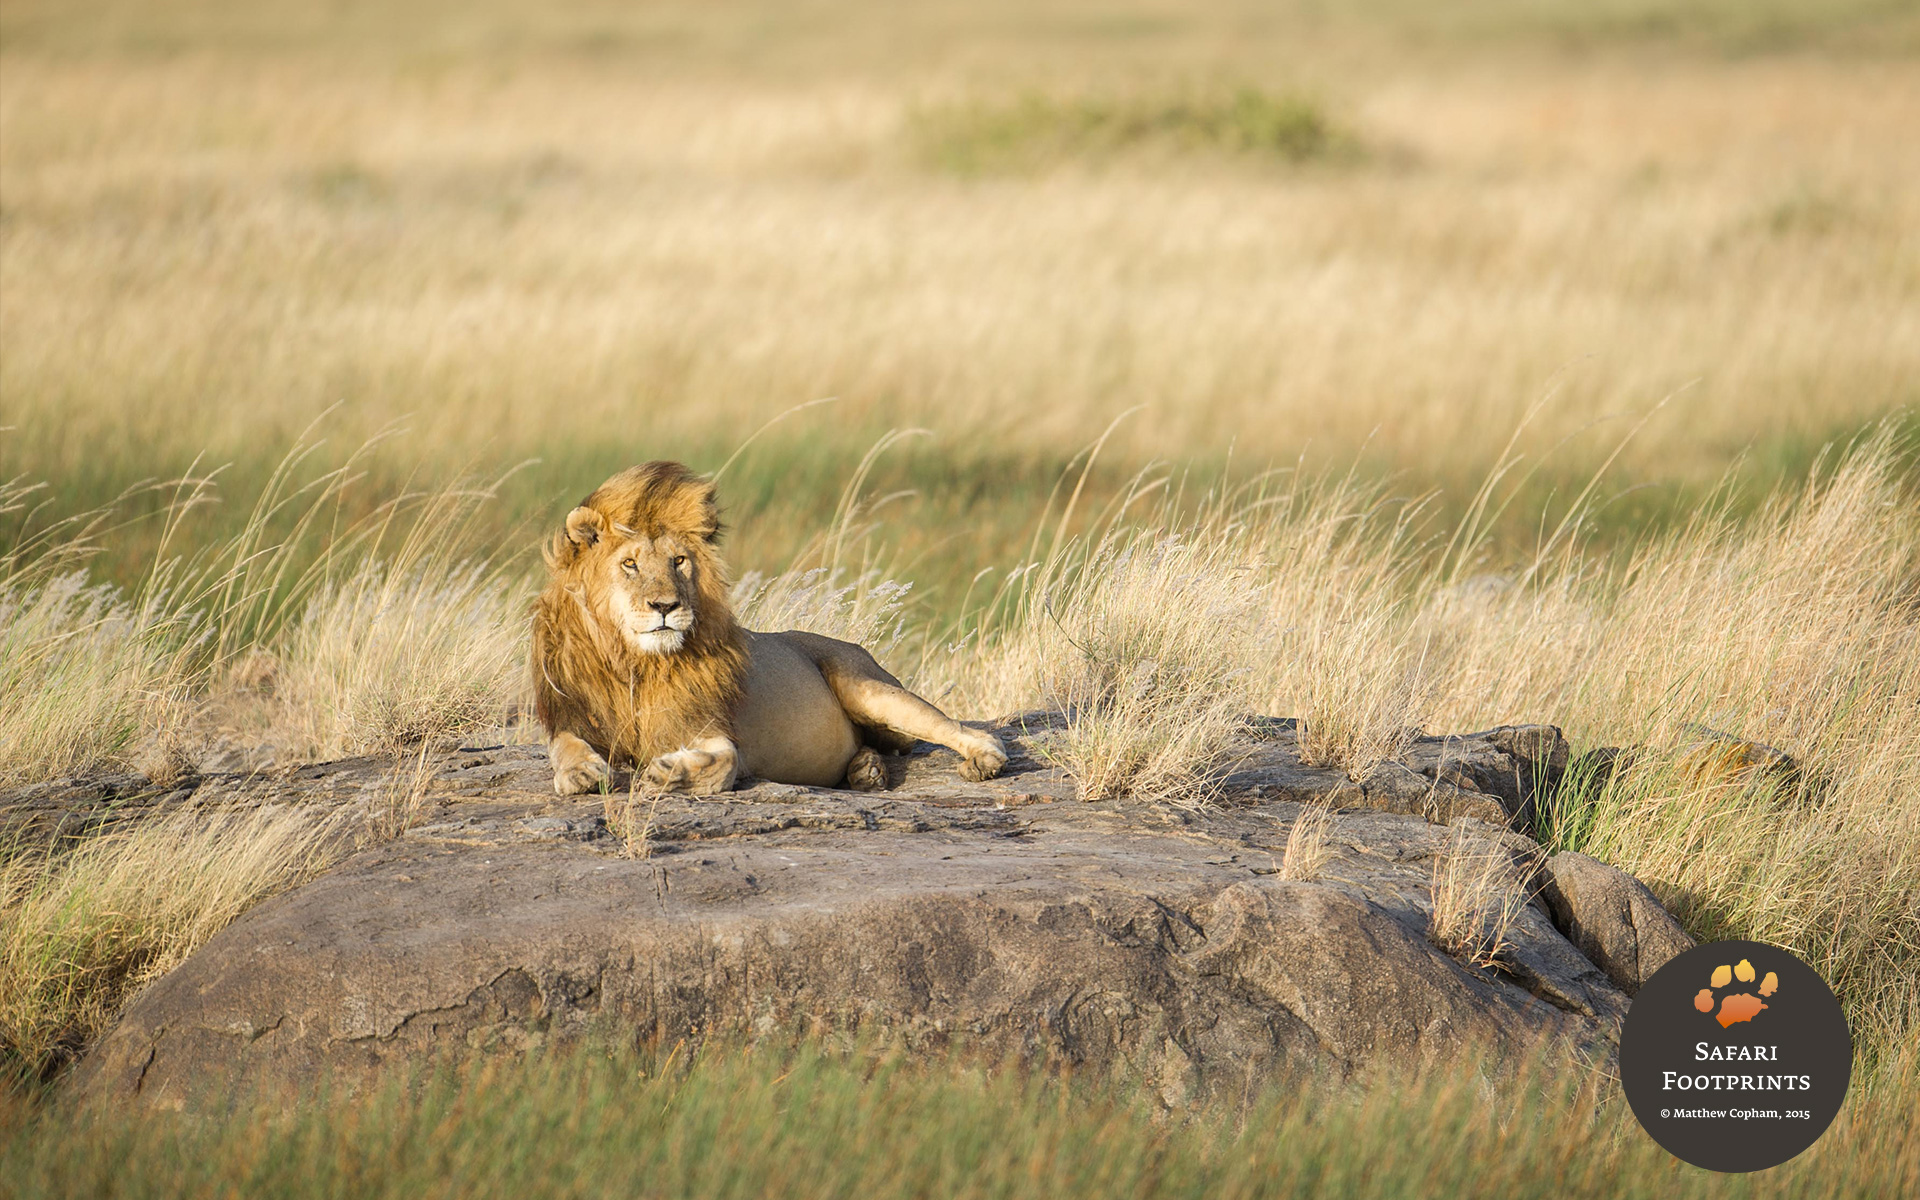 A male lion in the Serengeti National Park